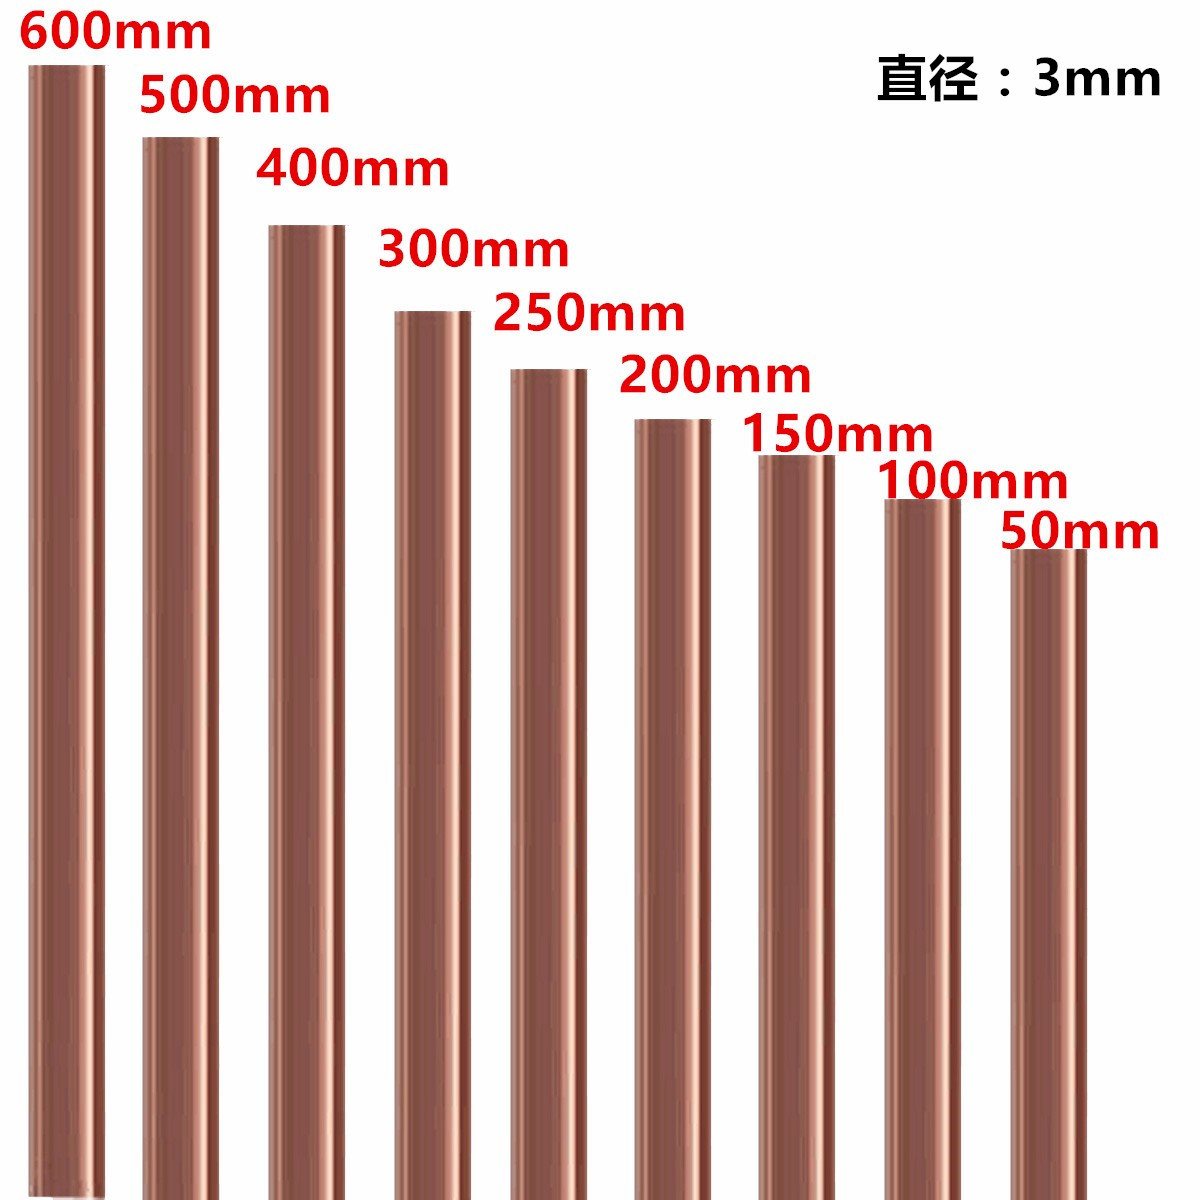 3mm Diameter Copper Round Bar Rod Milling Welding Metalworking 50-500mm Length